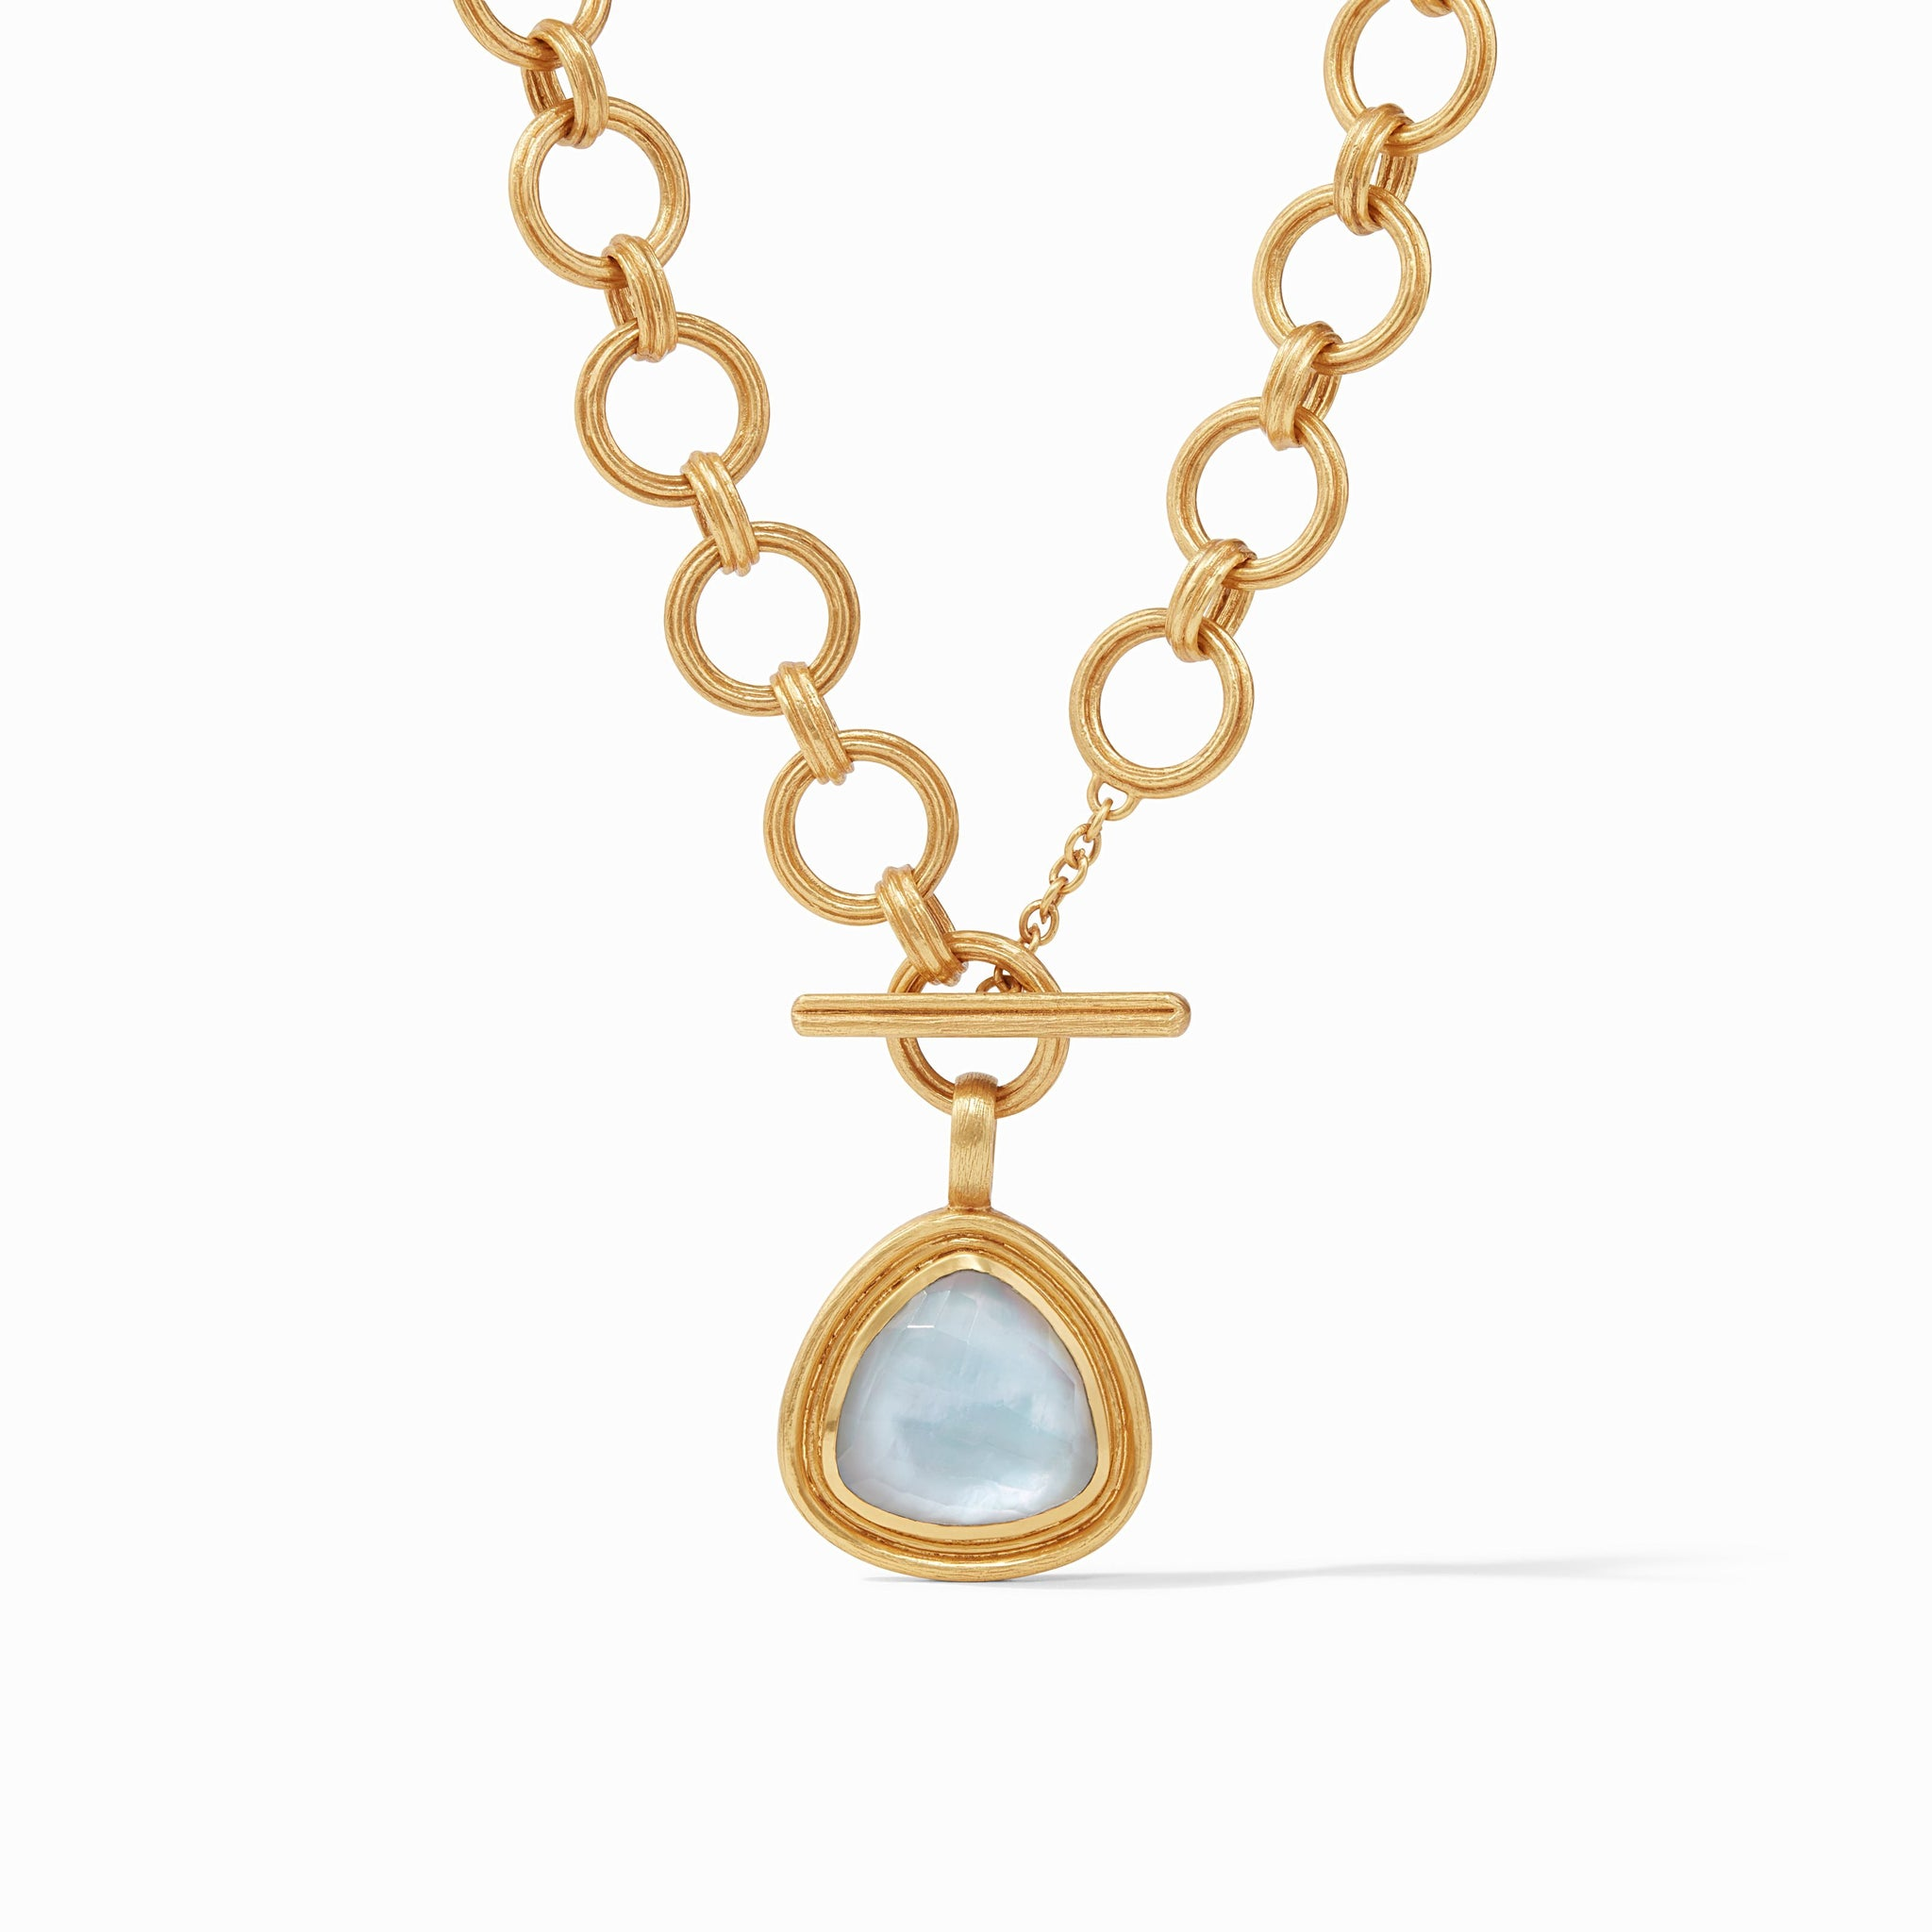 Iridescent Chalcedony Blue, irresistibly iridescent, summertime 2020, necklace favorites, new in chalcedony blue